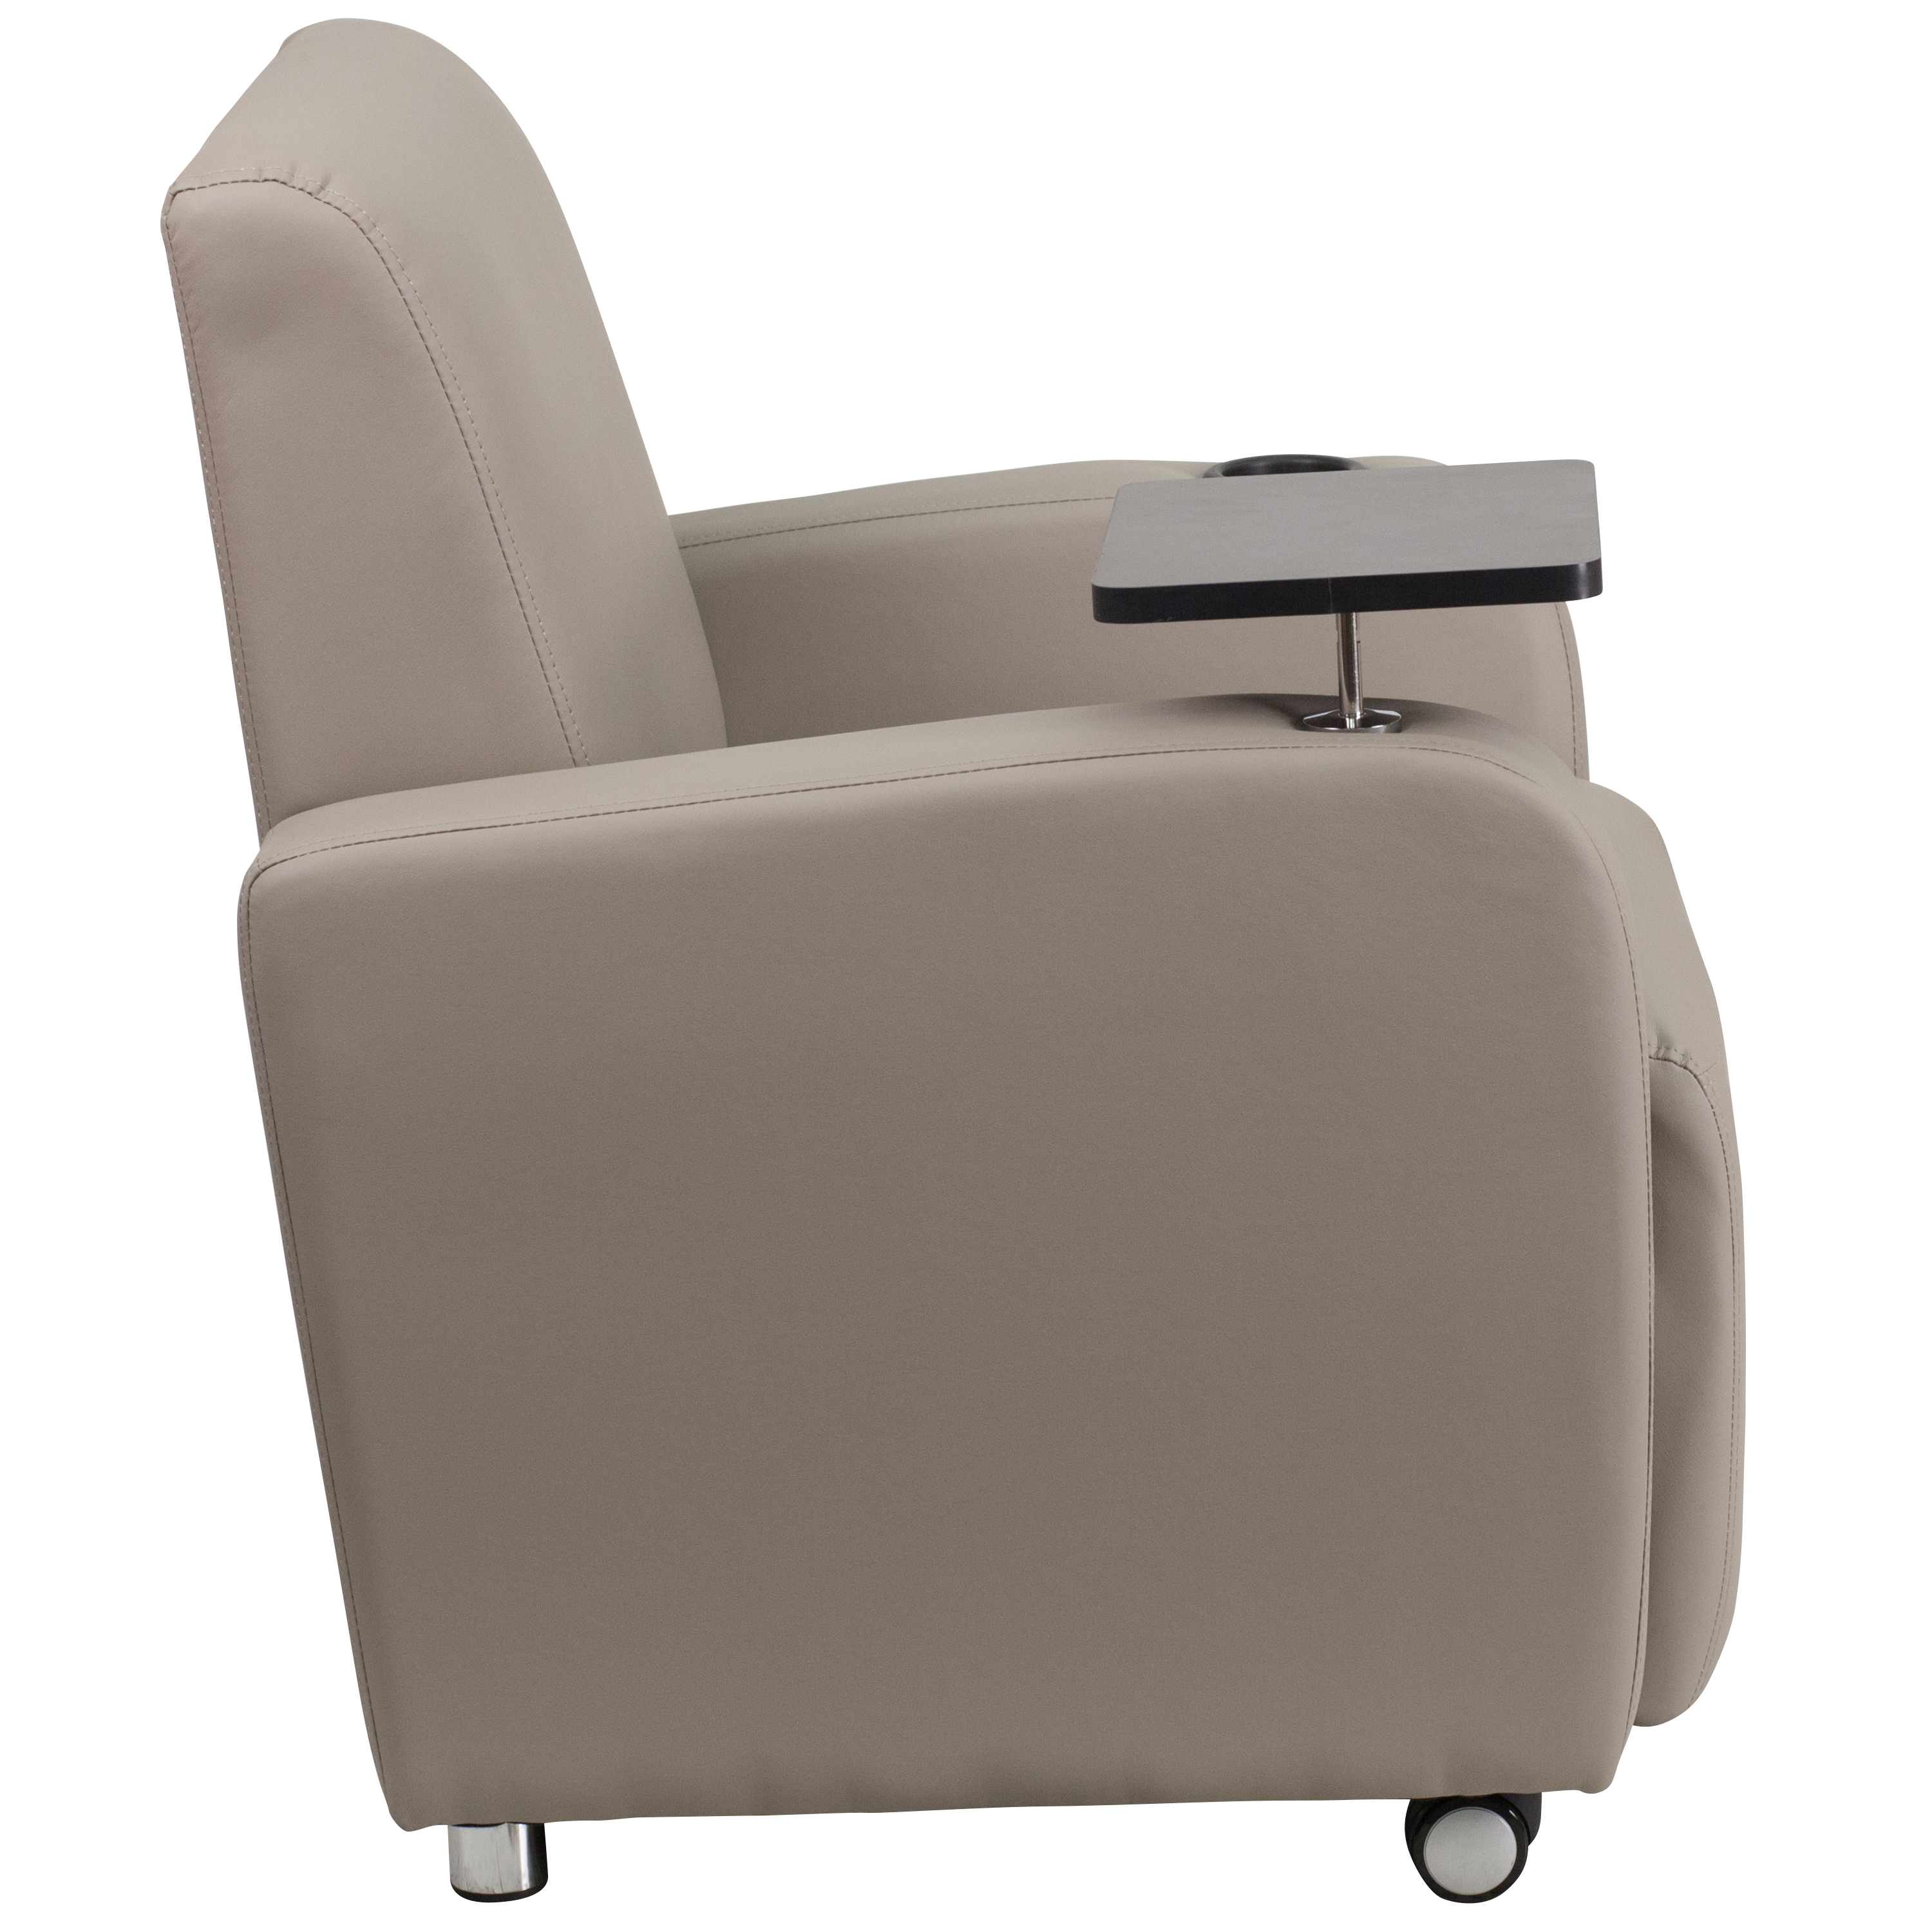 Tablet Arm Guest Chair With Front Wheel Casters And Cup